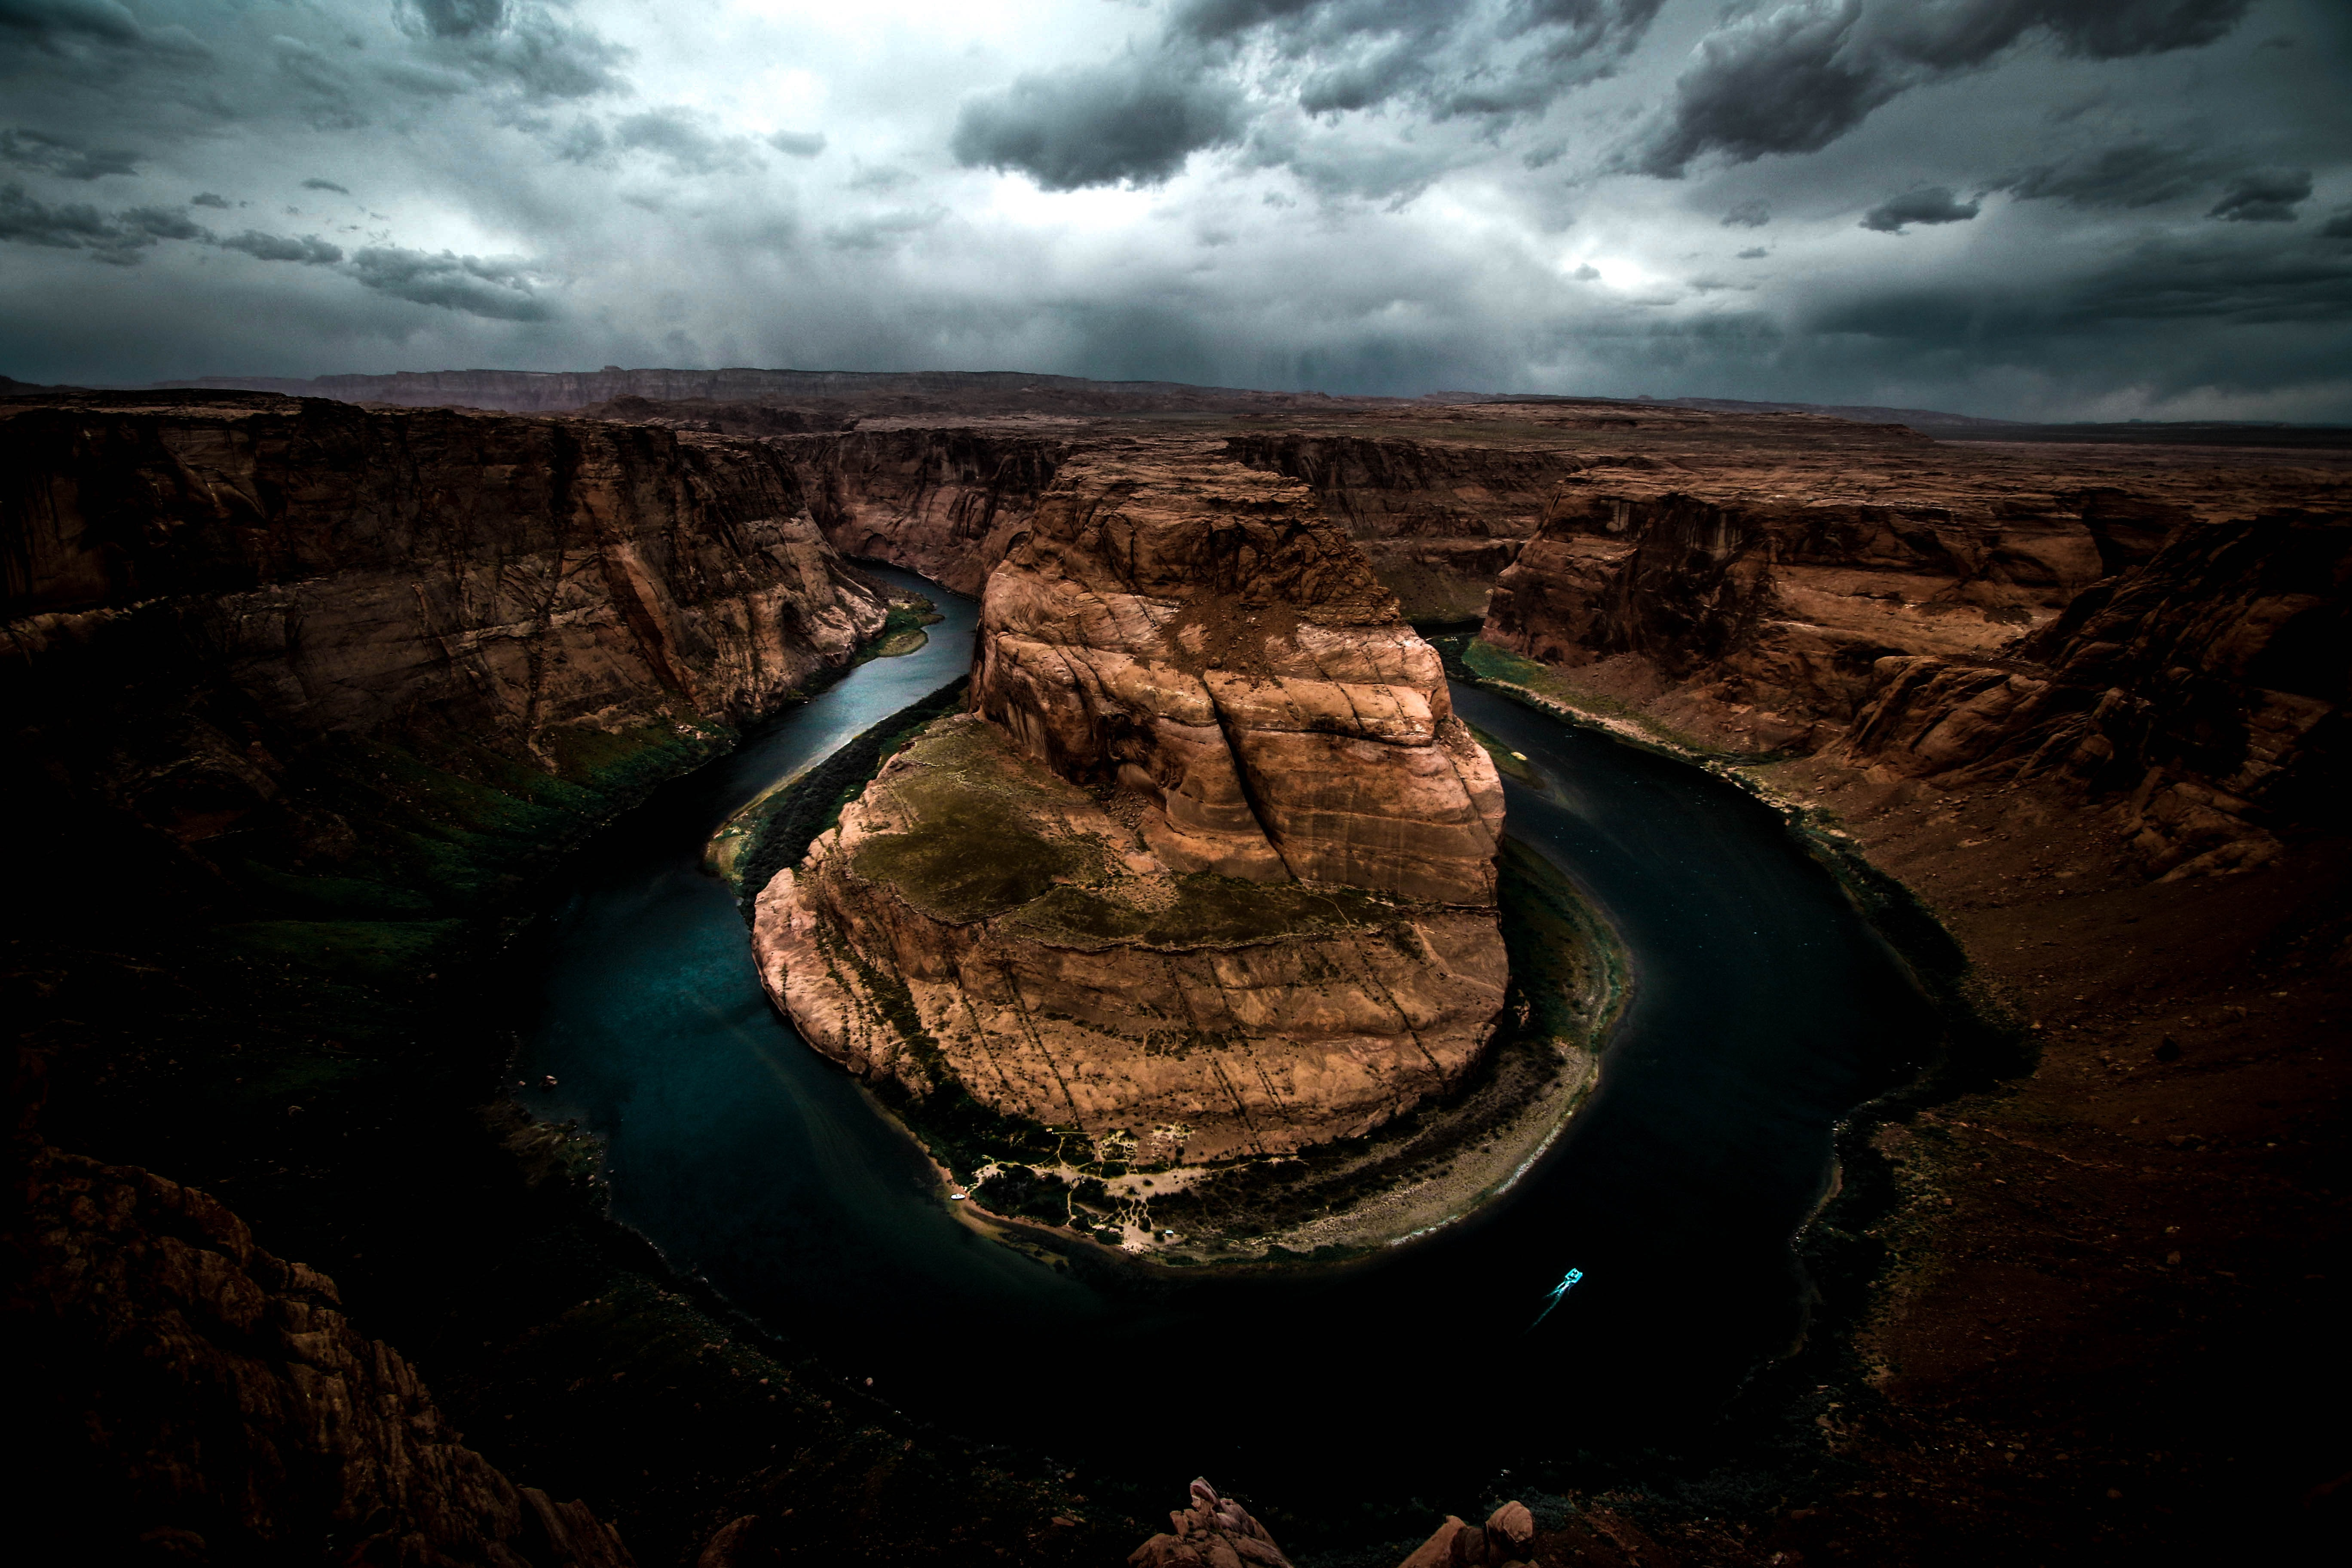 A dim shot of a horseshoe-shaped river bend in a canyon under a stormy sky